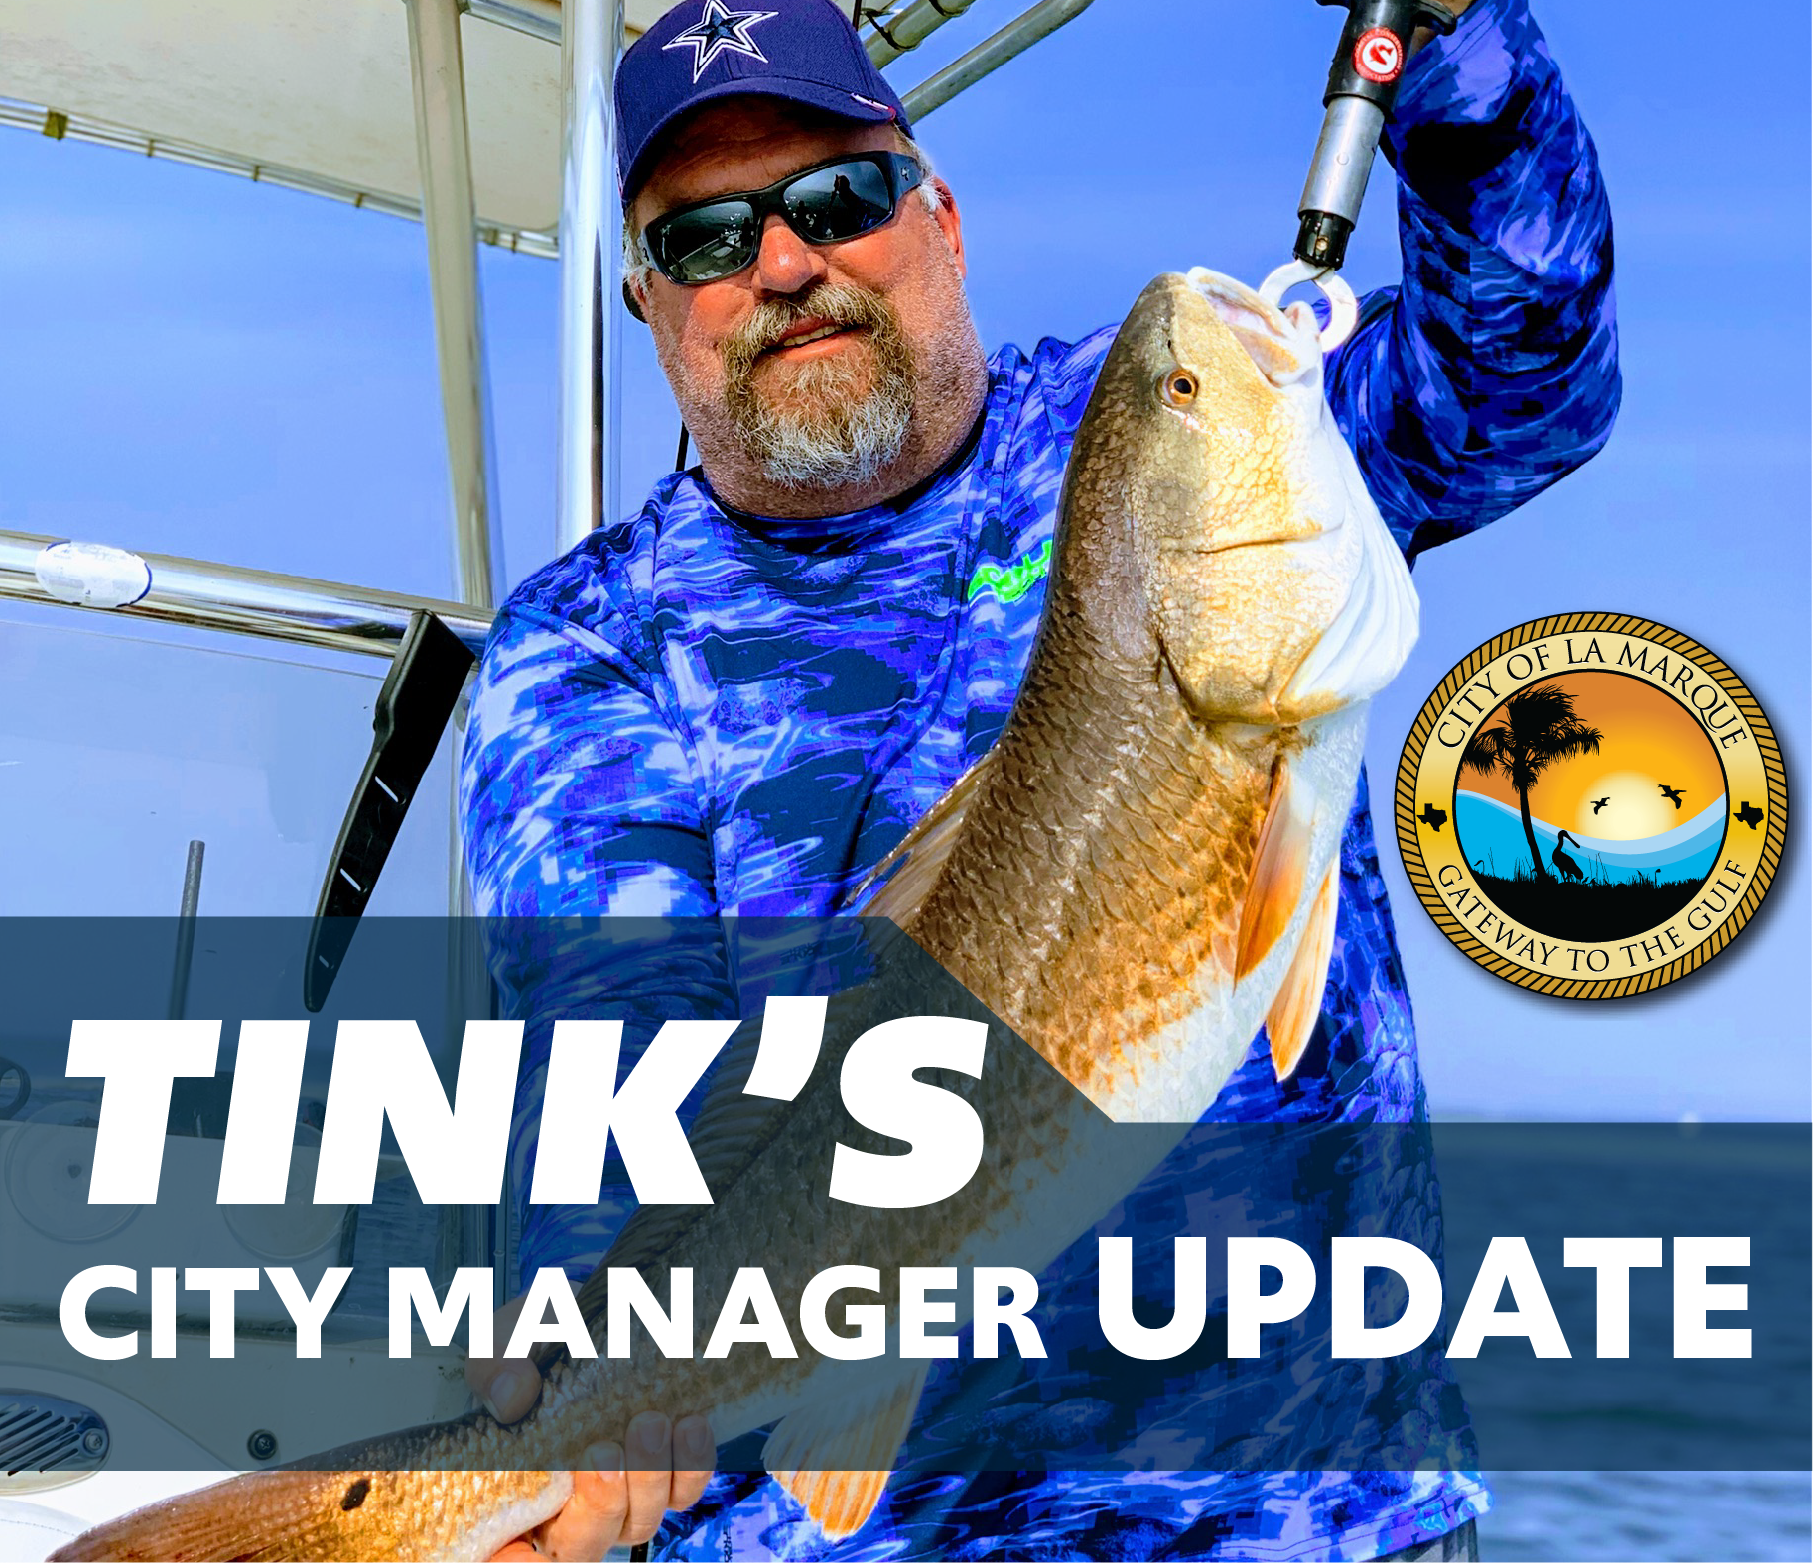 Tinks CM Update graphic shows Mr. Jackson holding a large red fish on a boat.